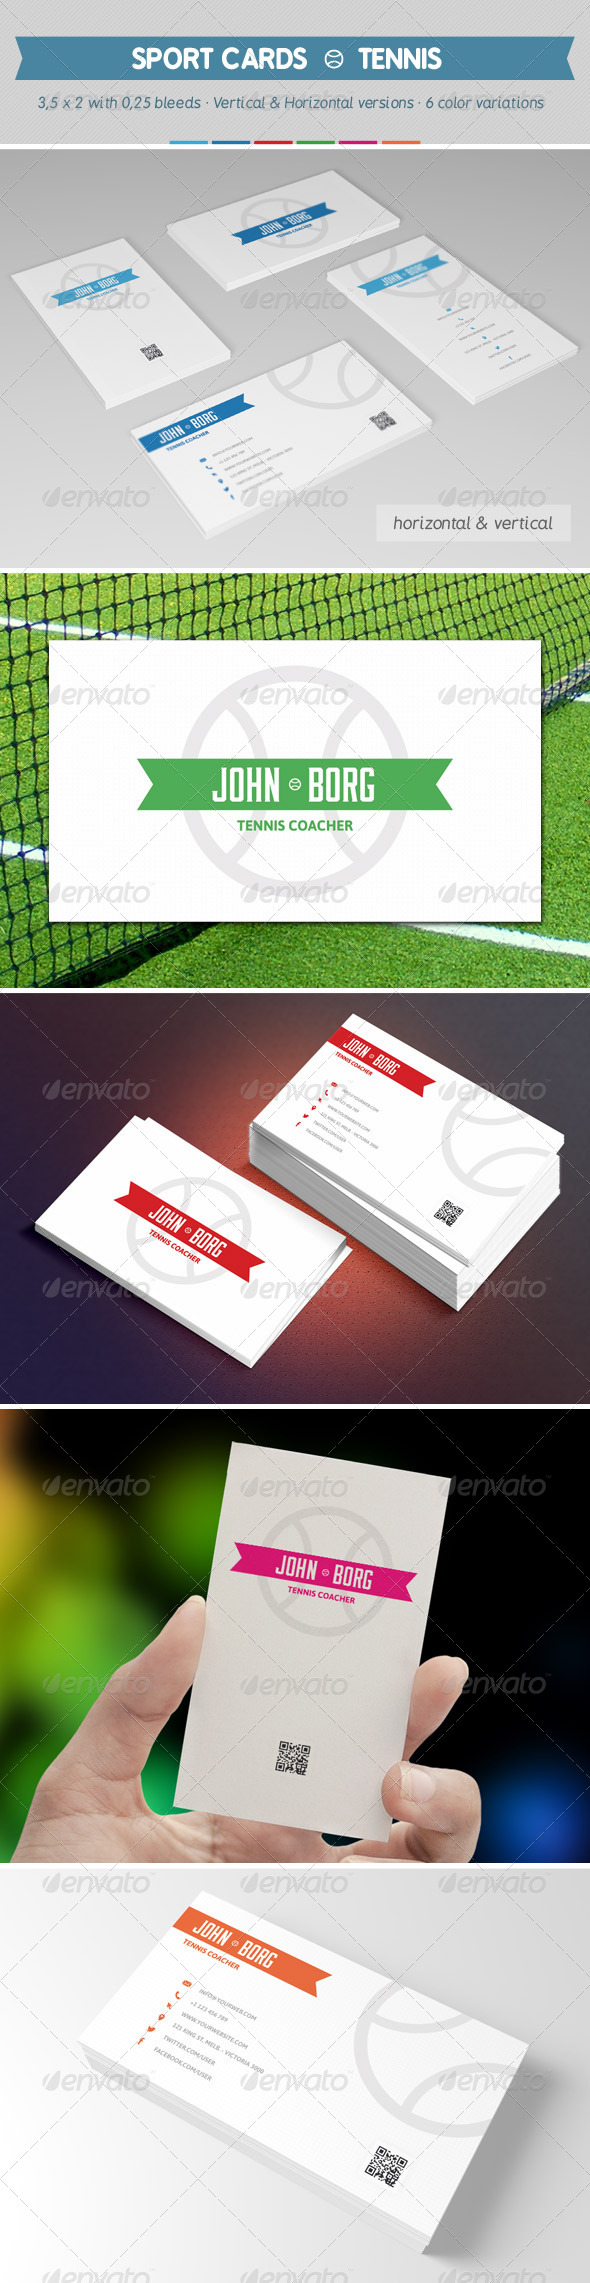 Sport Business Cards Tennis